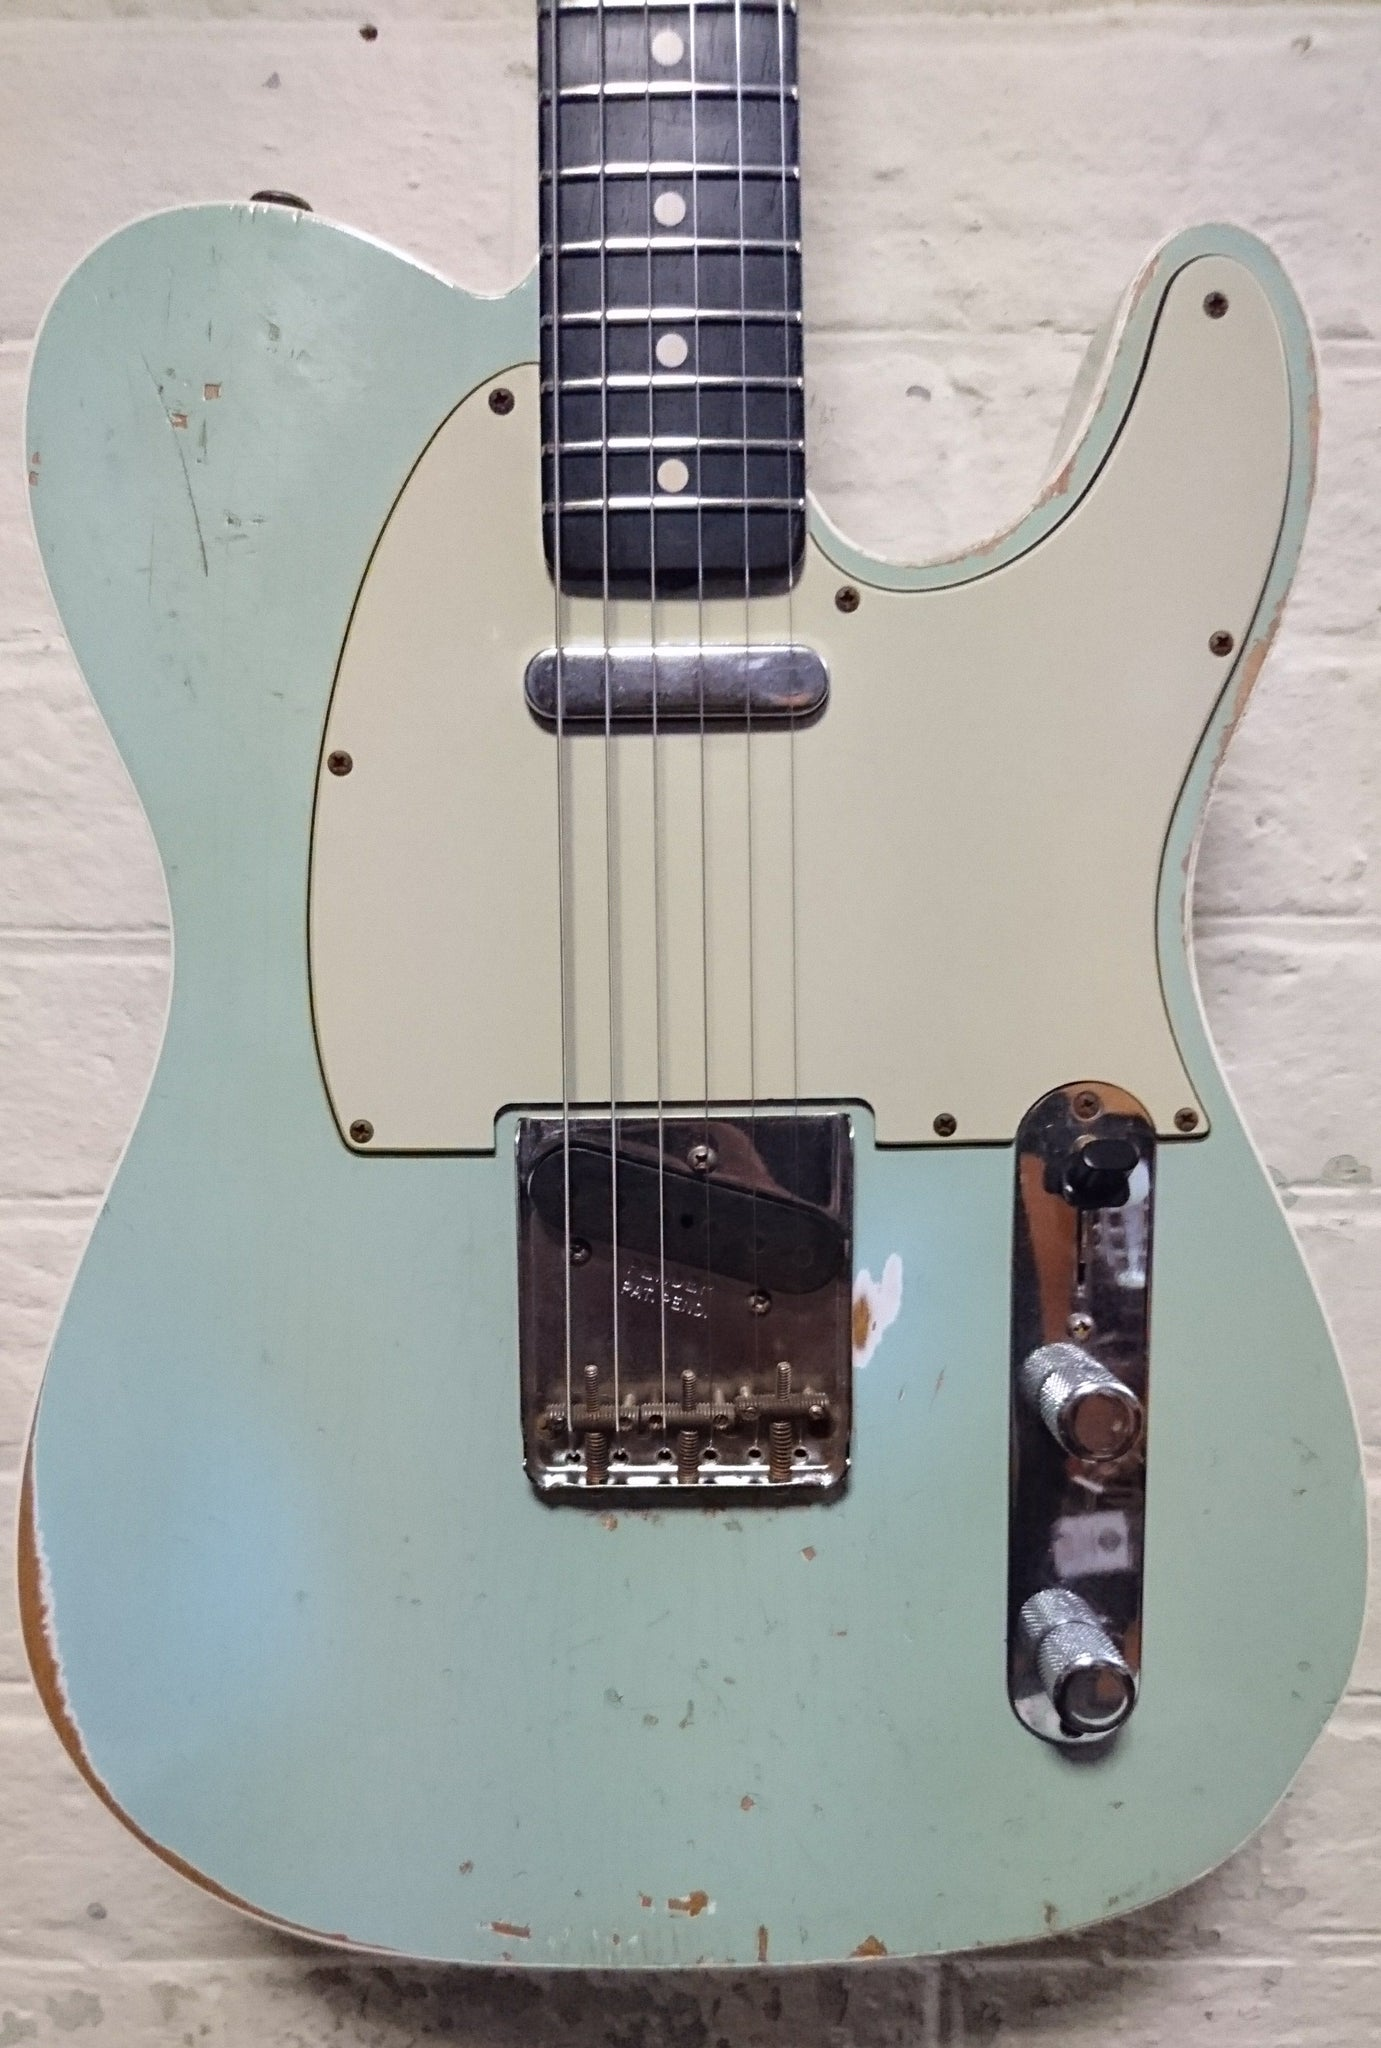 FENDER CUSTOM SHOP TELECASTER WILDWOOD 10 '59 SONIC BLUE